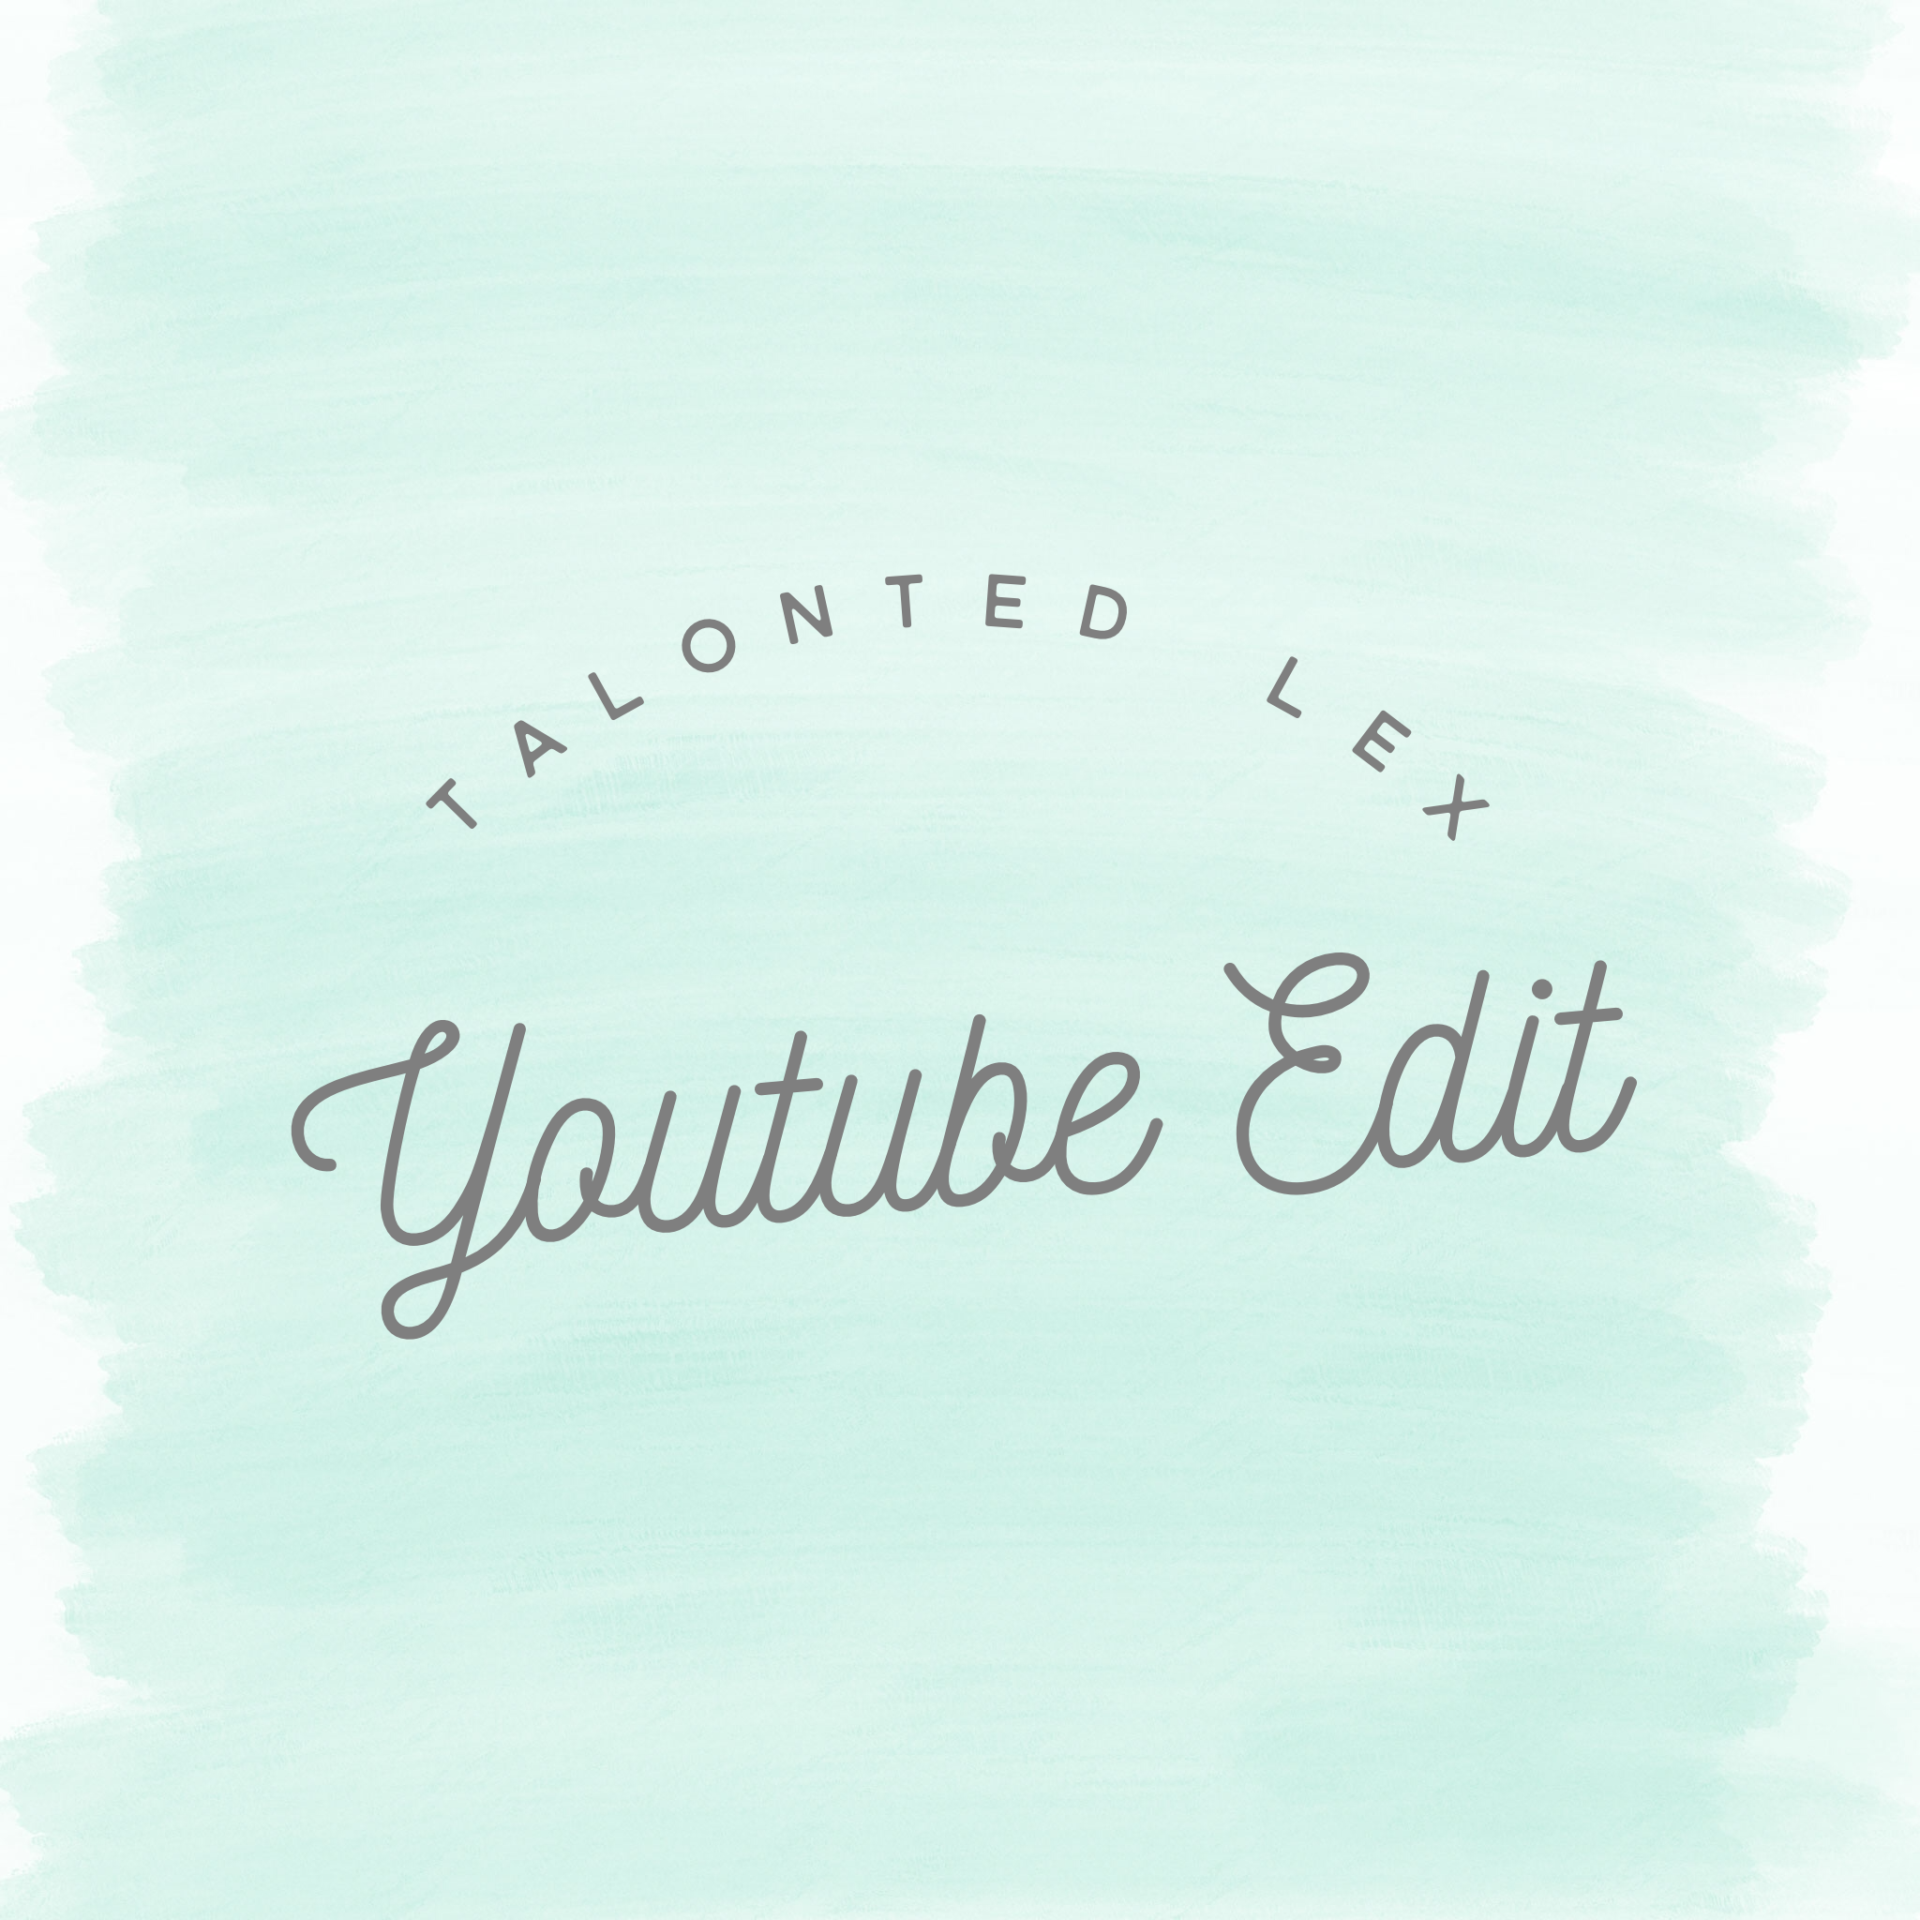 YouTube Edit - Talonted Lex : Let's have a catch up on my recent videos. There's karaoke in Brighton, a hair curling tutorial, some hilarious make up challenges and more...